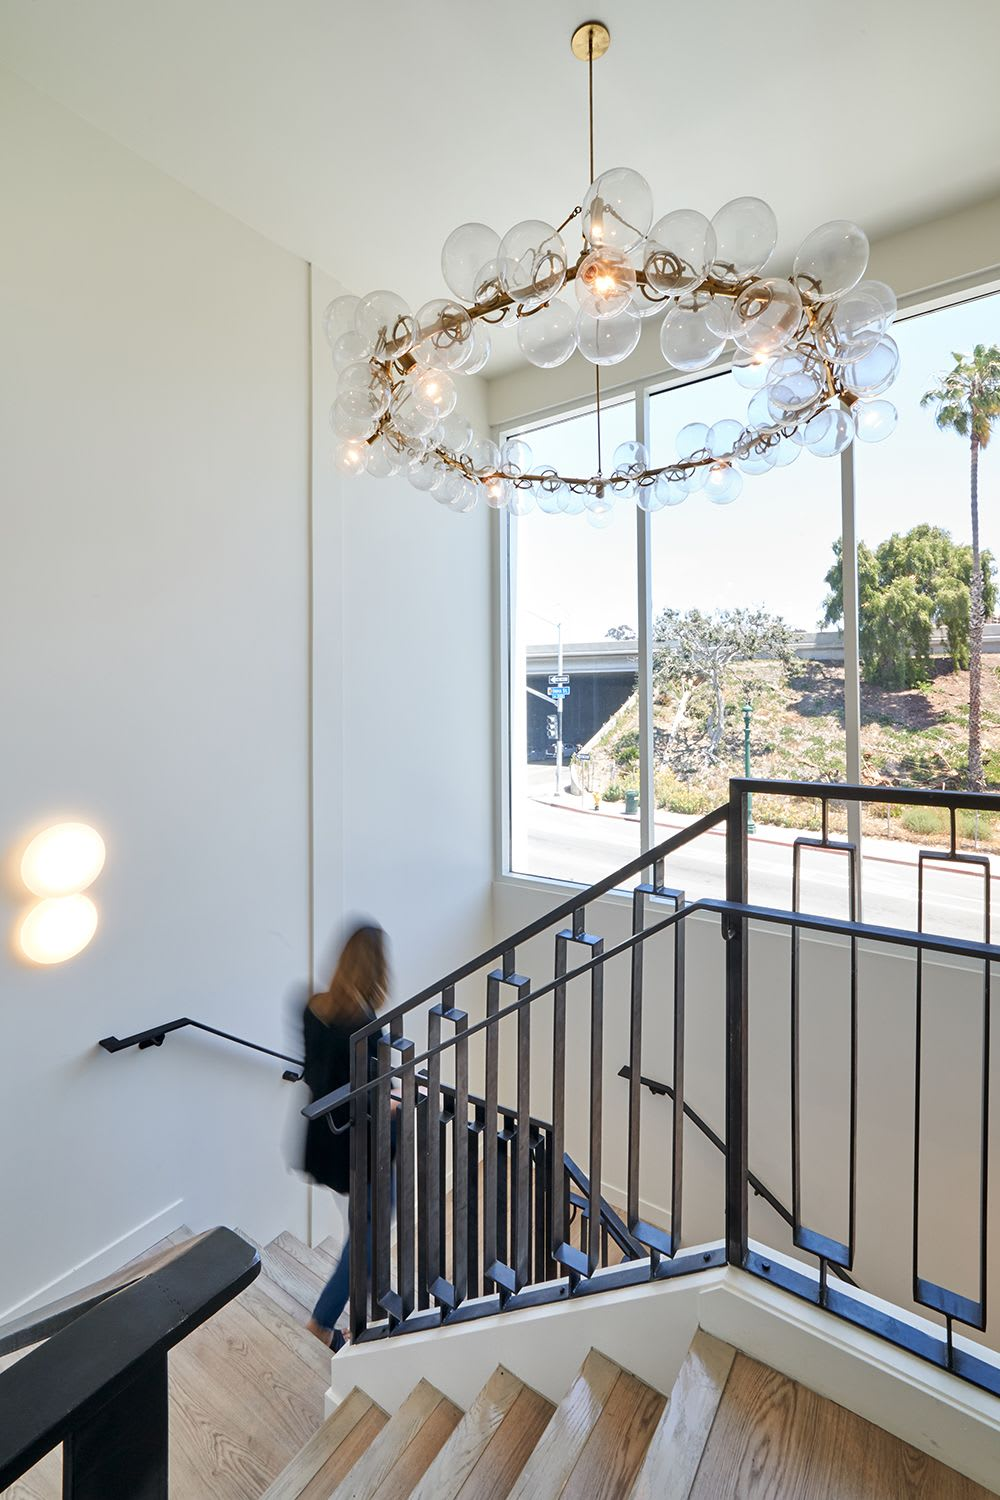 Interior Design By Studio H Design Group Seen At Bespoke Partners San Diego Wescover